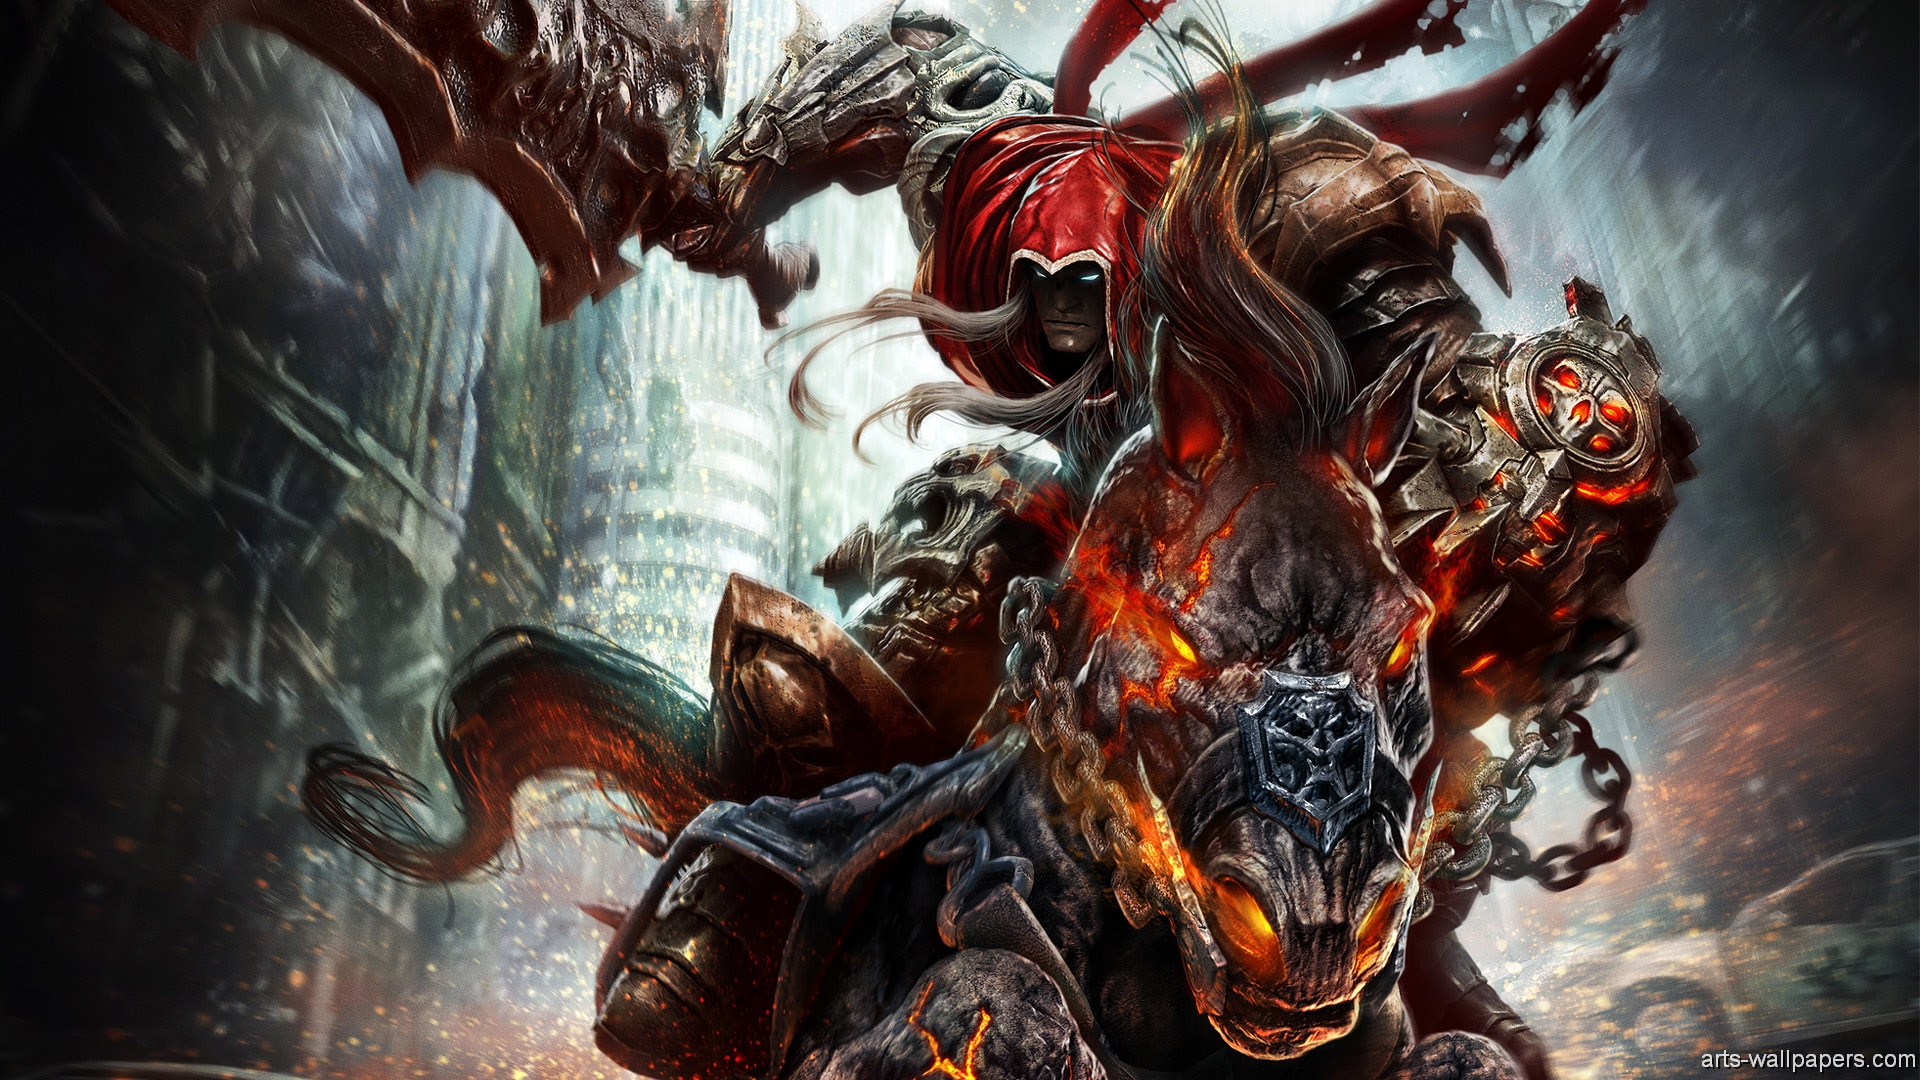 Game Video Games Desktop Pages wallpapers HD   151027 1920x1080